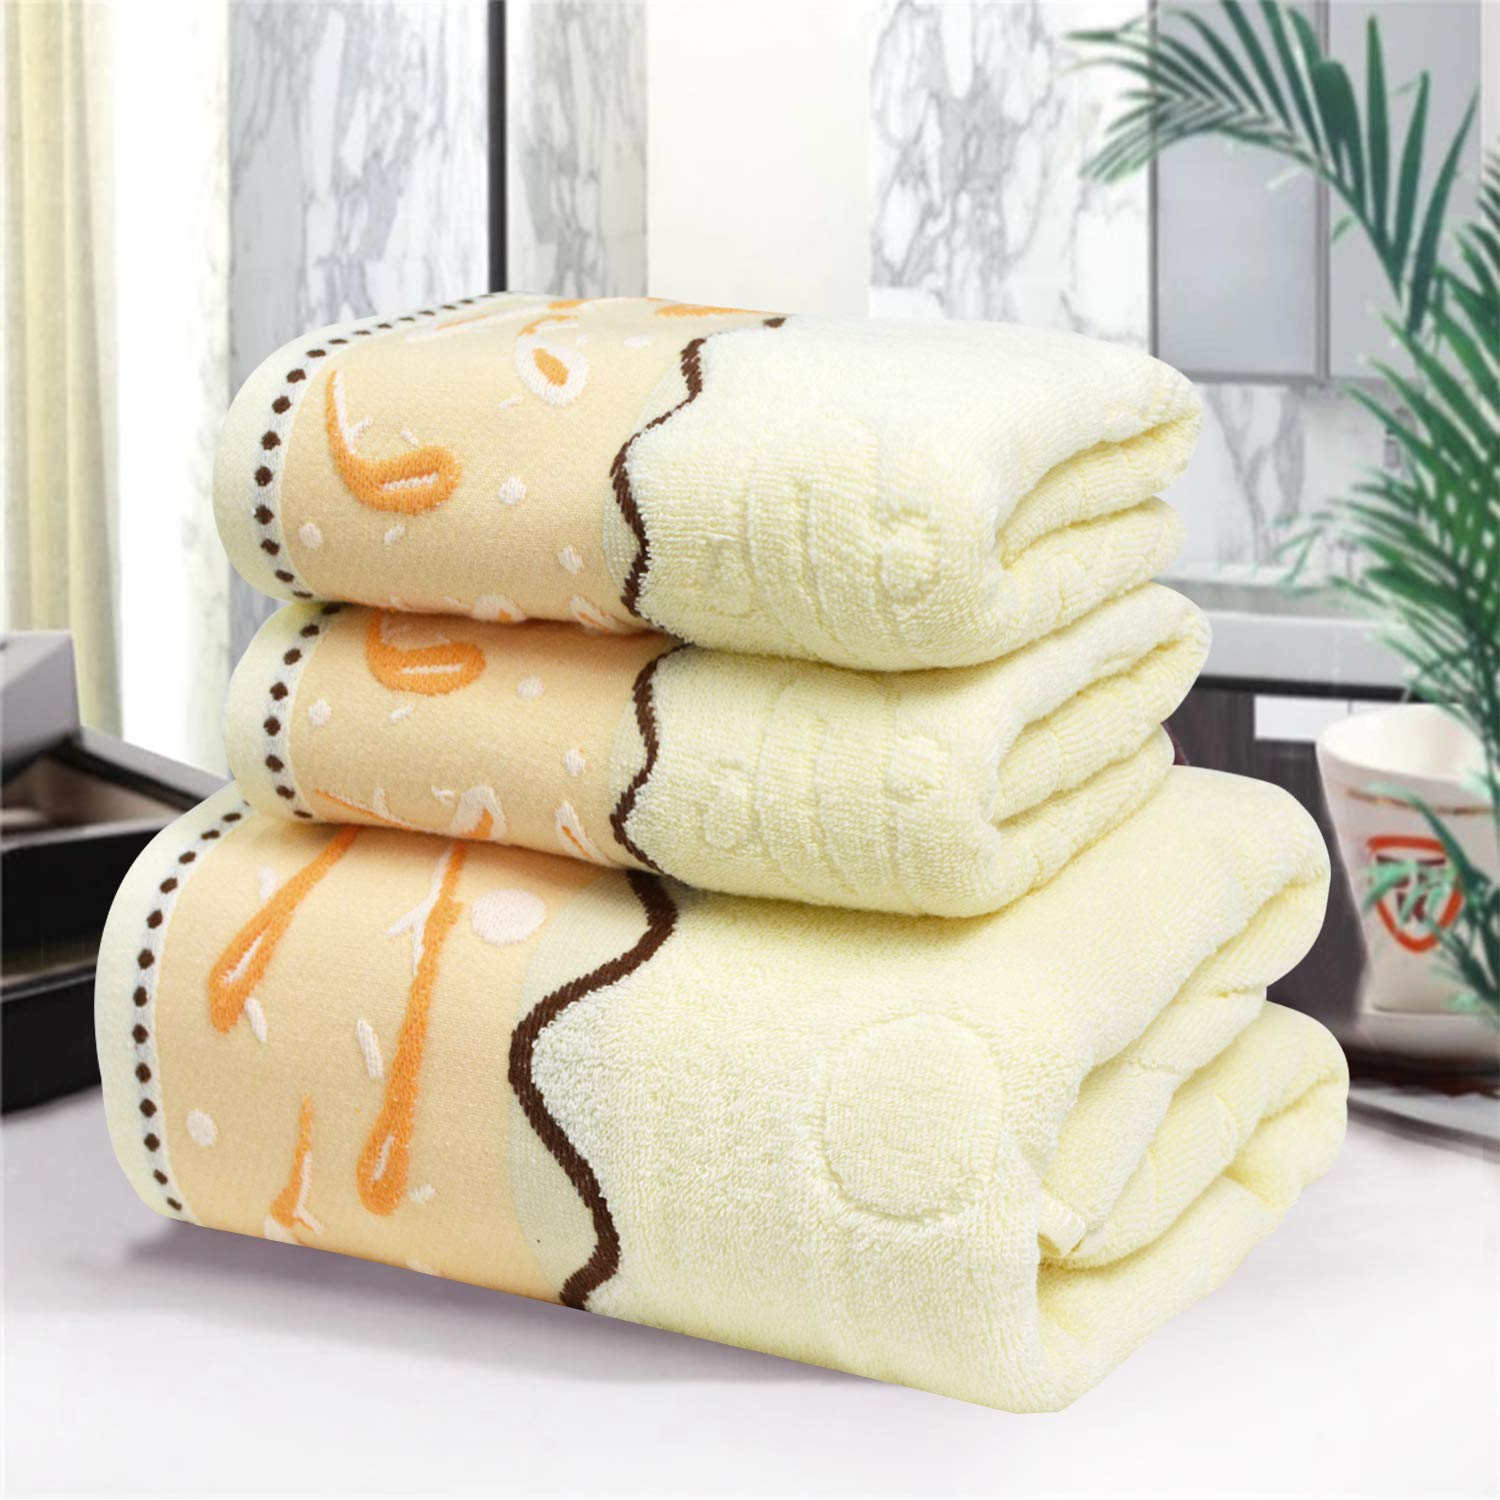 USTIDE Luxury Emboridery Towels Fish Bath Towels Colorful Hand Towels Cotton Face Towels 3 Pieces (Yellow3)